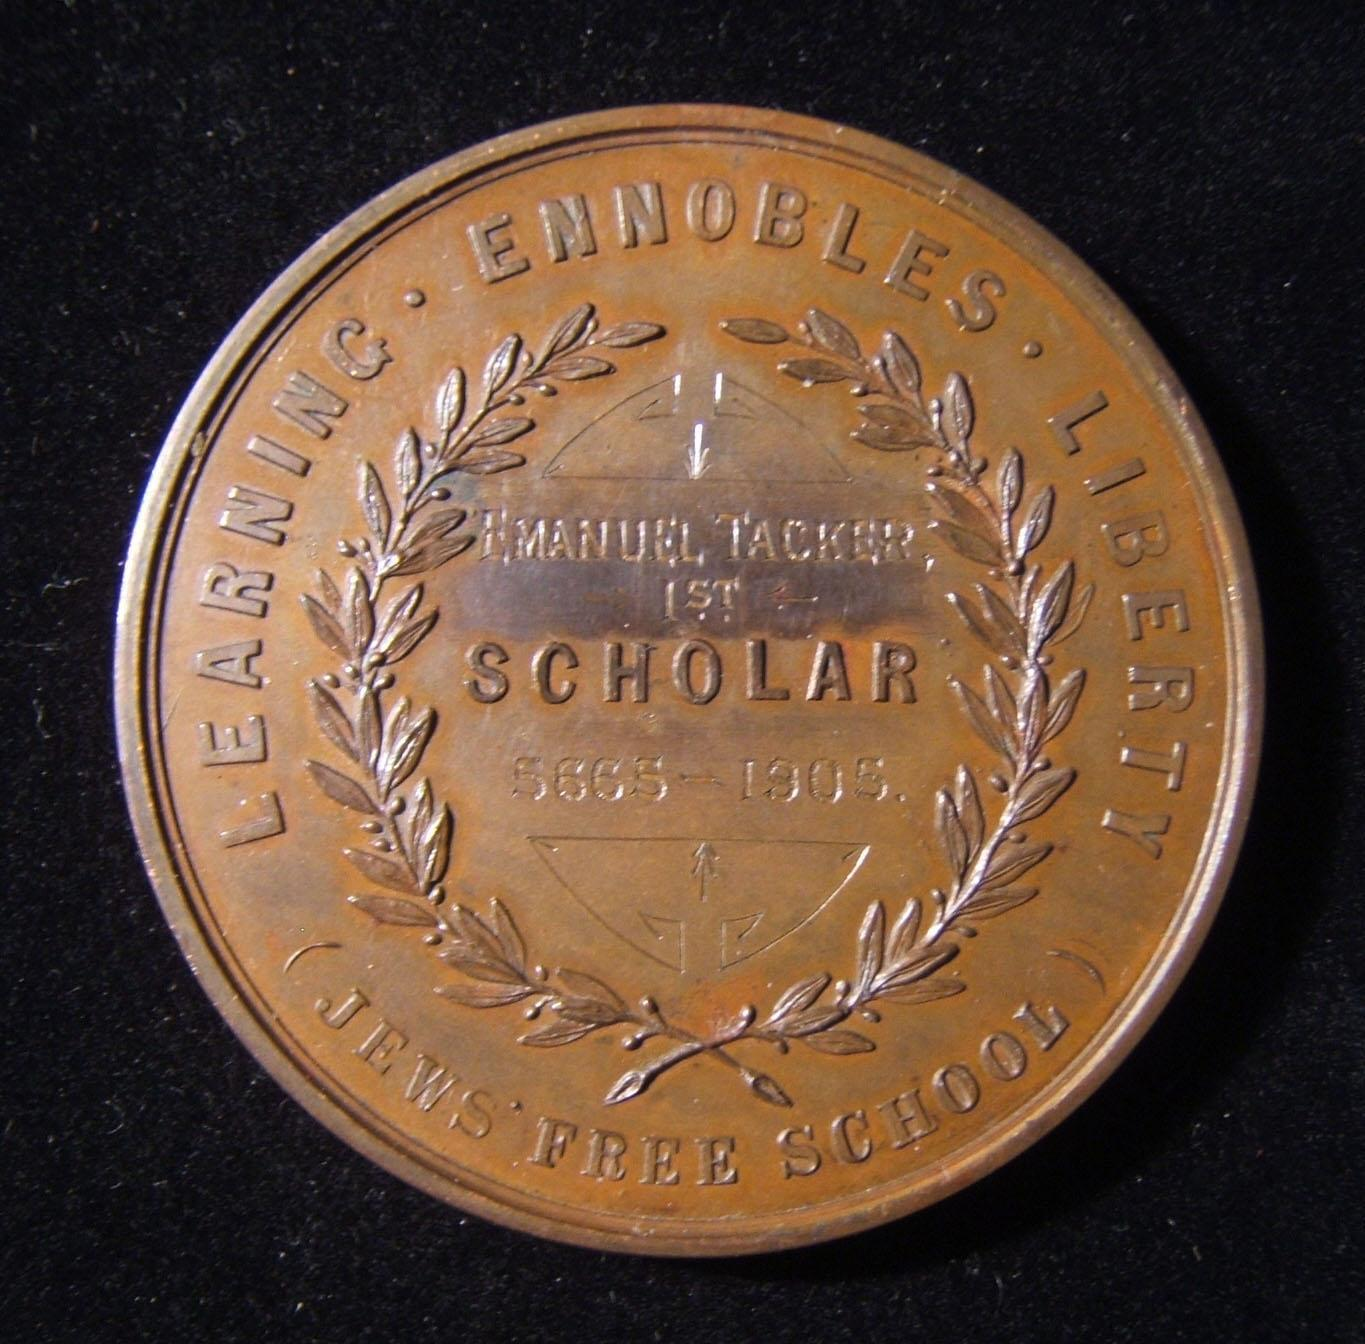 Britain: 1st Place Scholar bronze medal awarded by the Jewish Free School to Emanuel Tacker, 1905; not maker-marked; size: 55.25mm; weight: 88.15g. The Jewish Free School (JFS) was